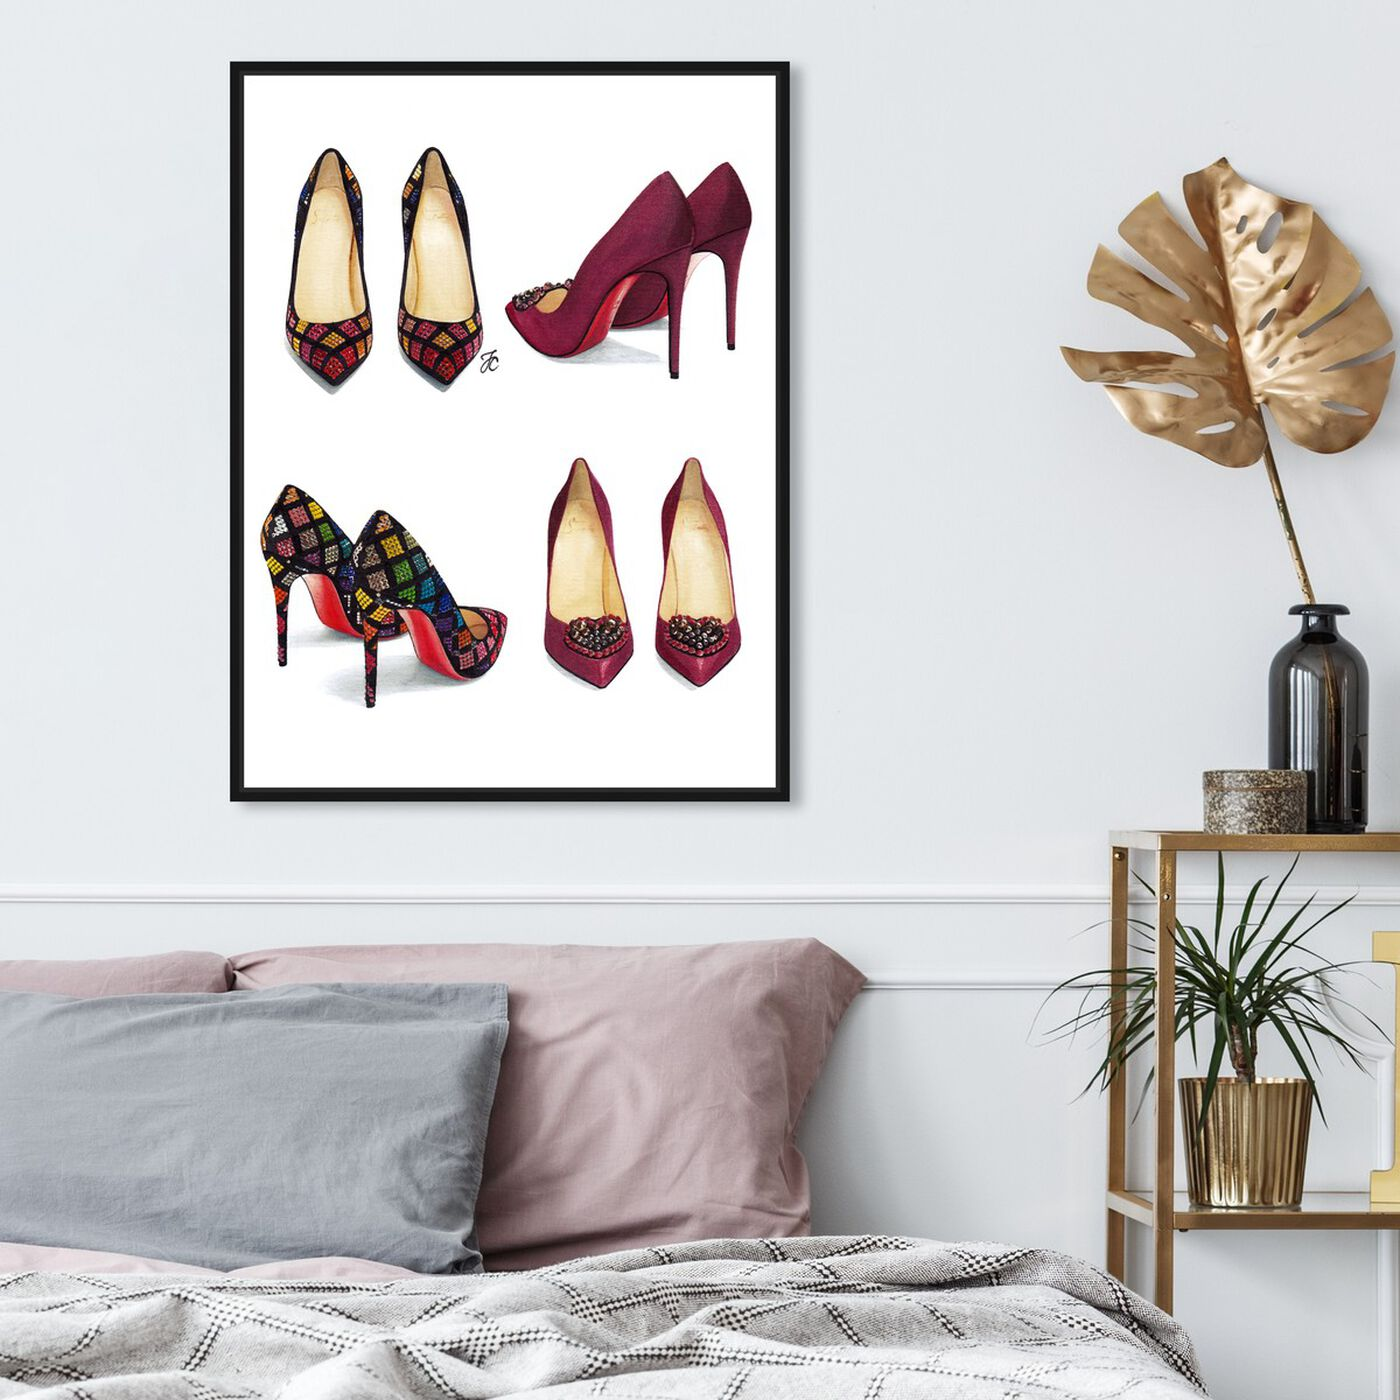 Hanging view of Doll Memories - My Shoe Closet featuring fashion and glam and shoes art.